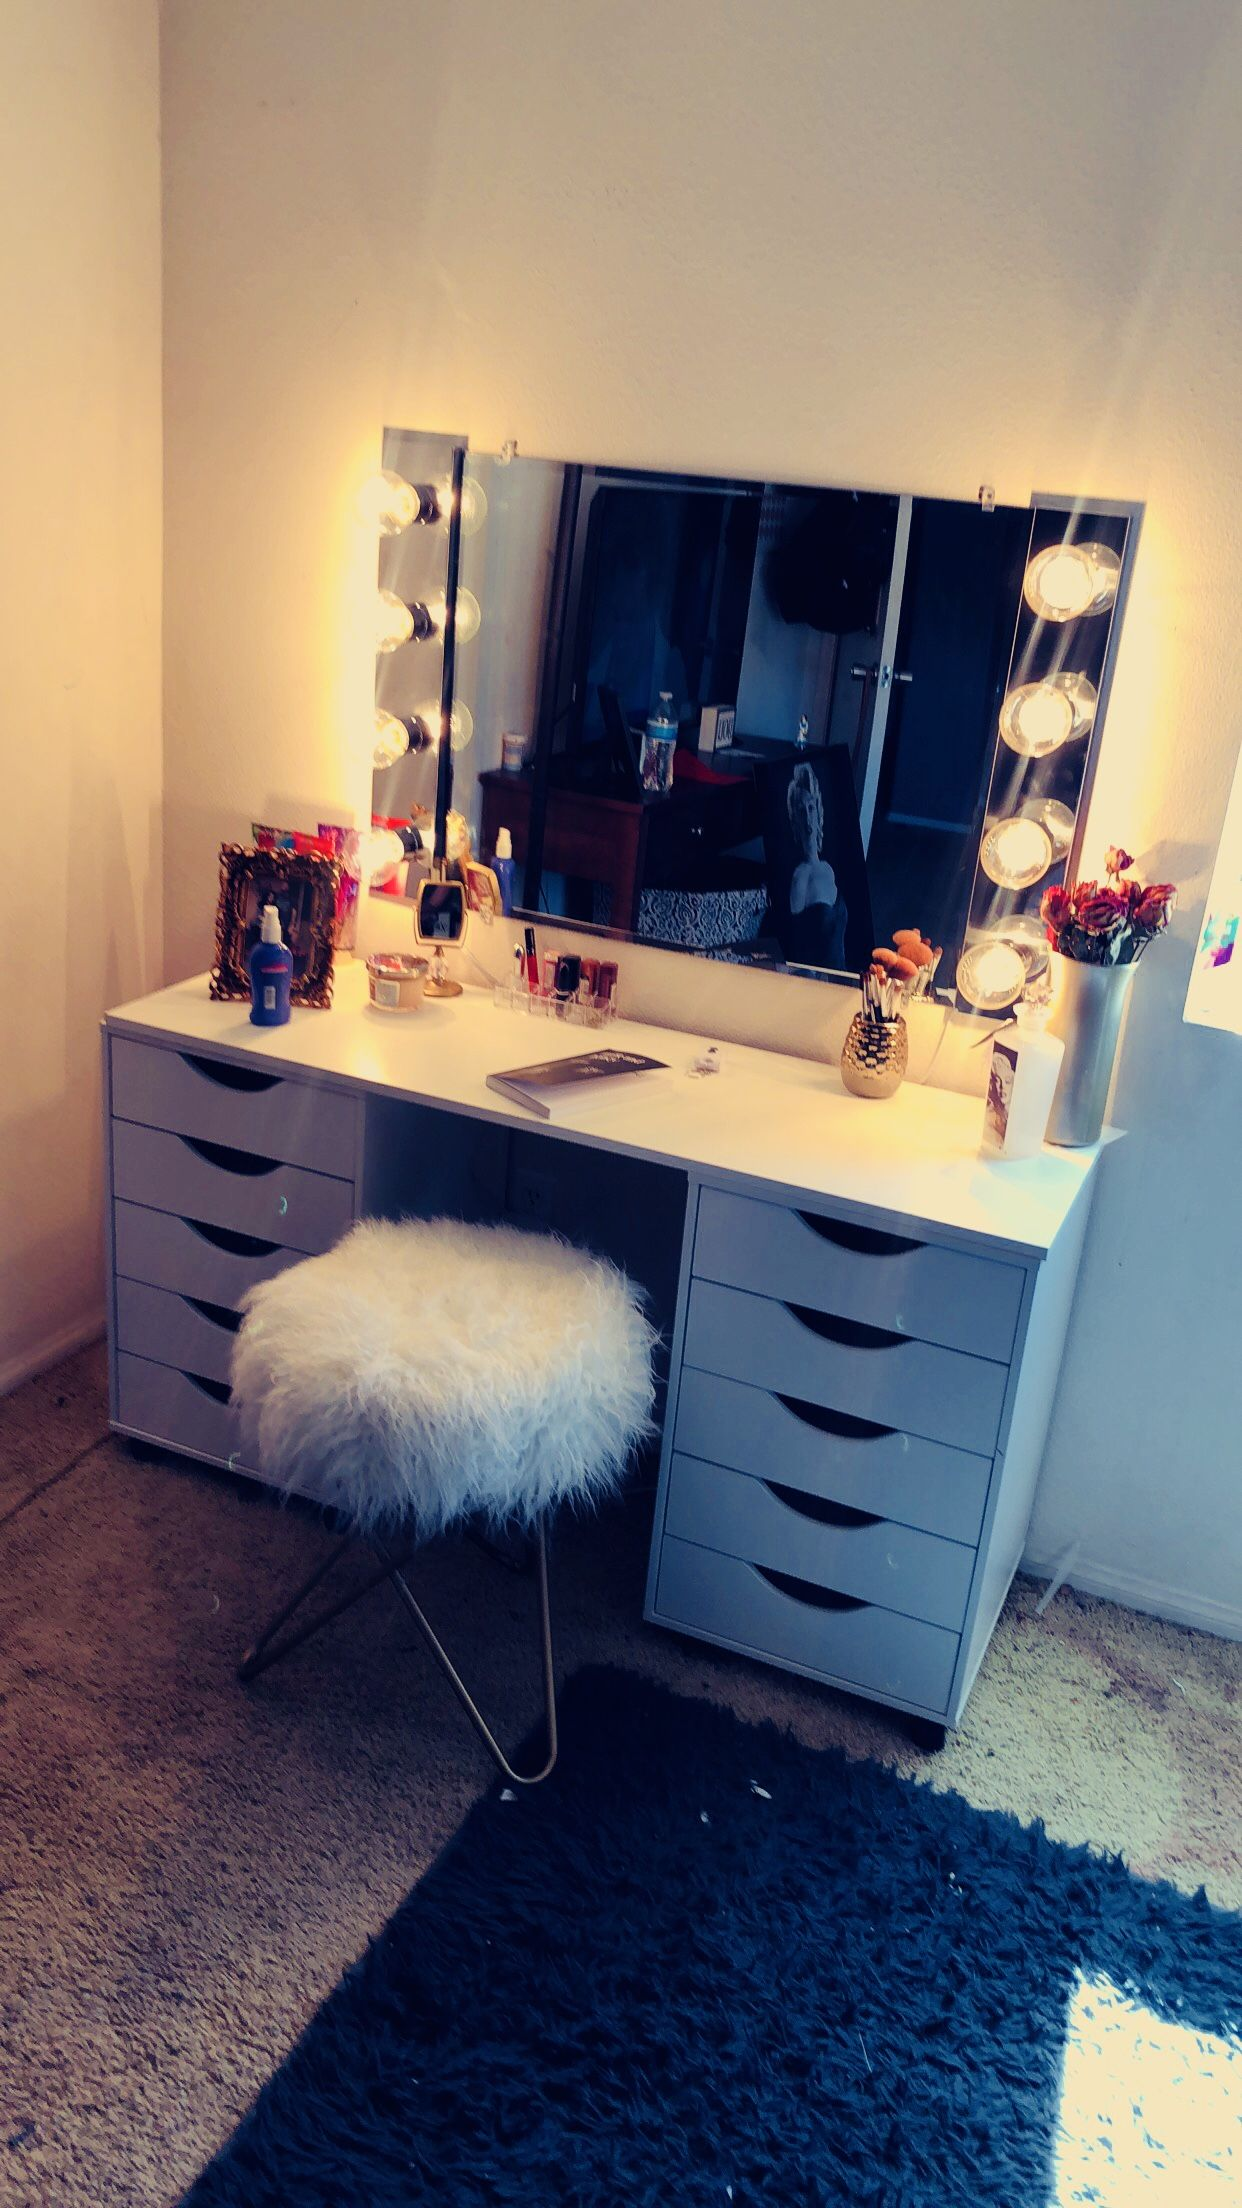 Diy Ikea Vanity Dupe Mirror Lowes Lights Amazon Drawers Michaels Table Top Lowes Chair Ross Ikea Vanity Diy Makeup Vanity Ikea Makeup Vanity